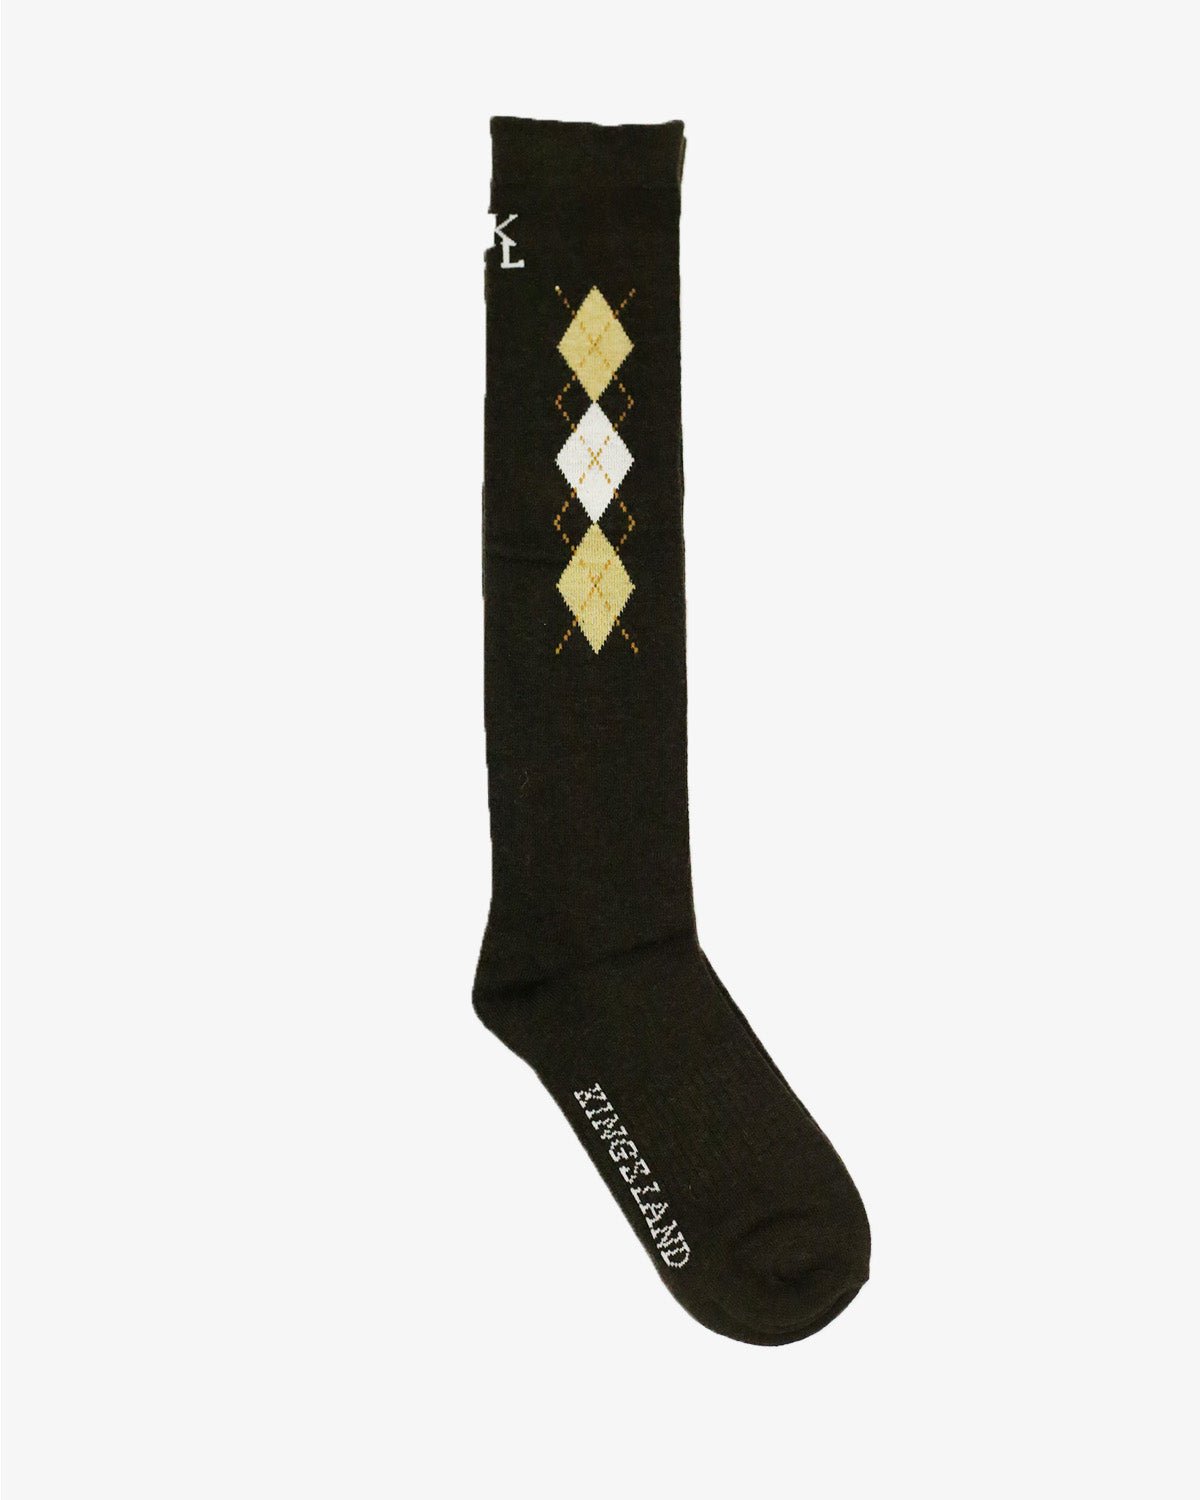 3 Routes Unisex Socks